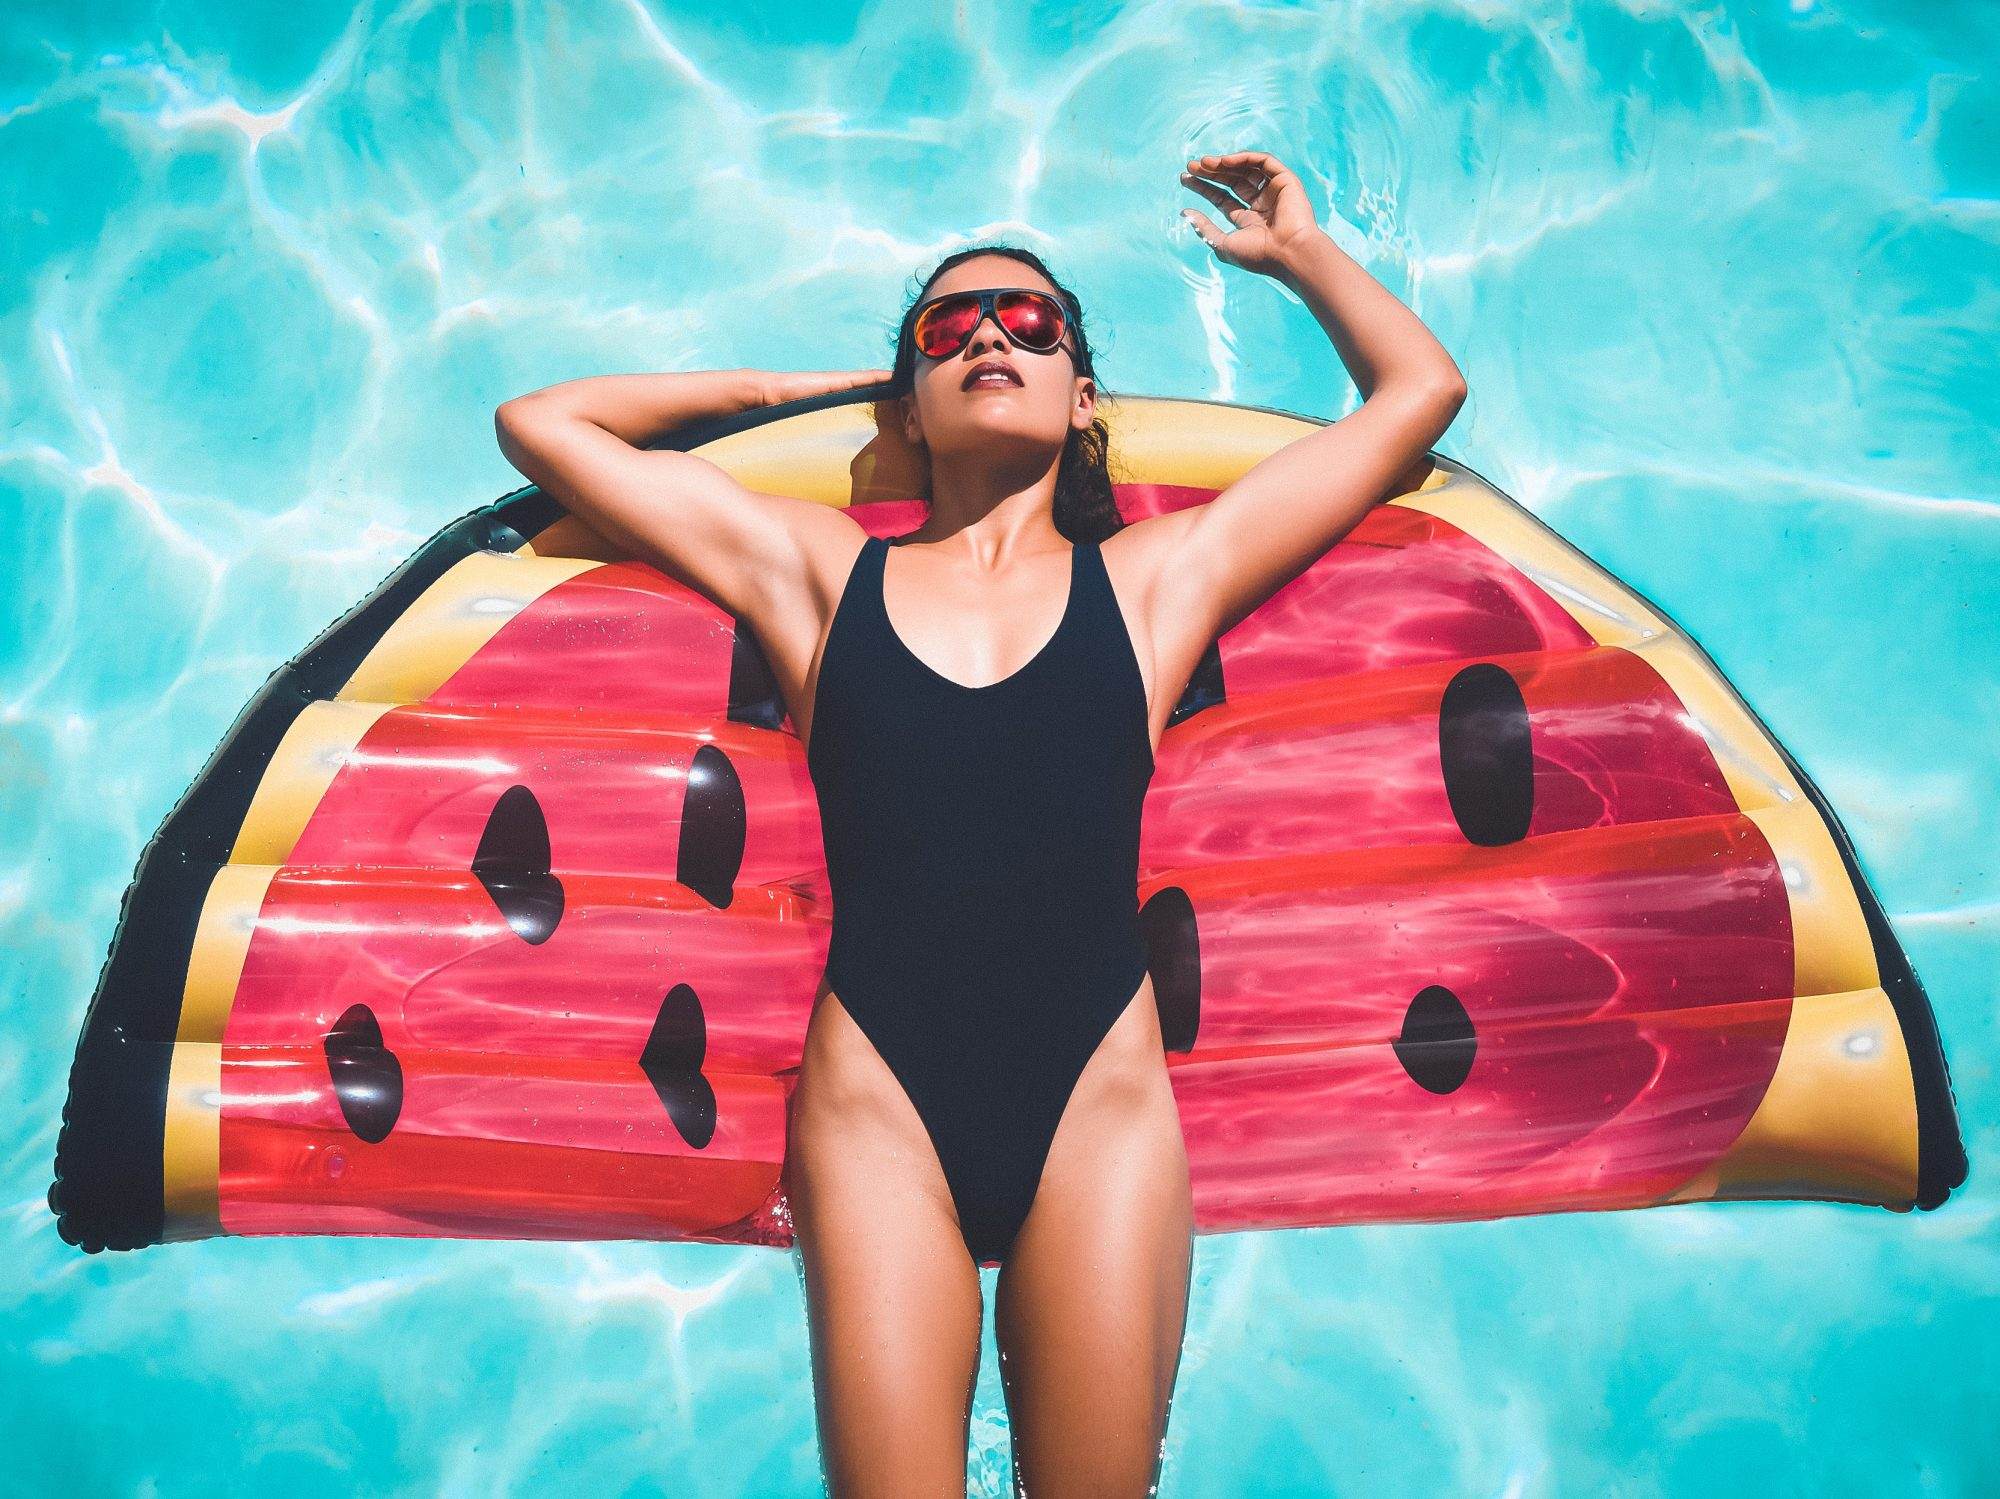 Directly Above Shot Of Woman In Swimwear Relaxing On a Watermelon Pool Float